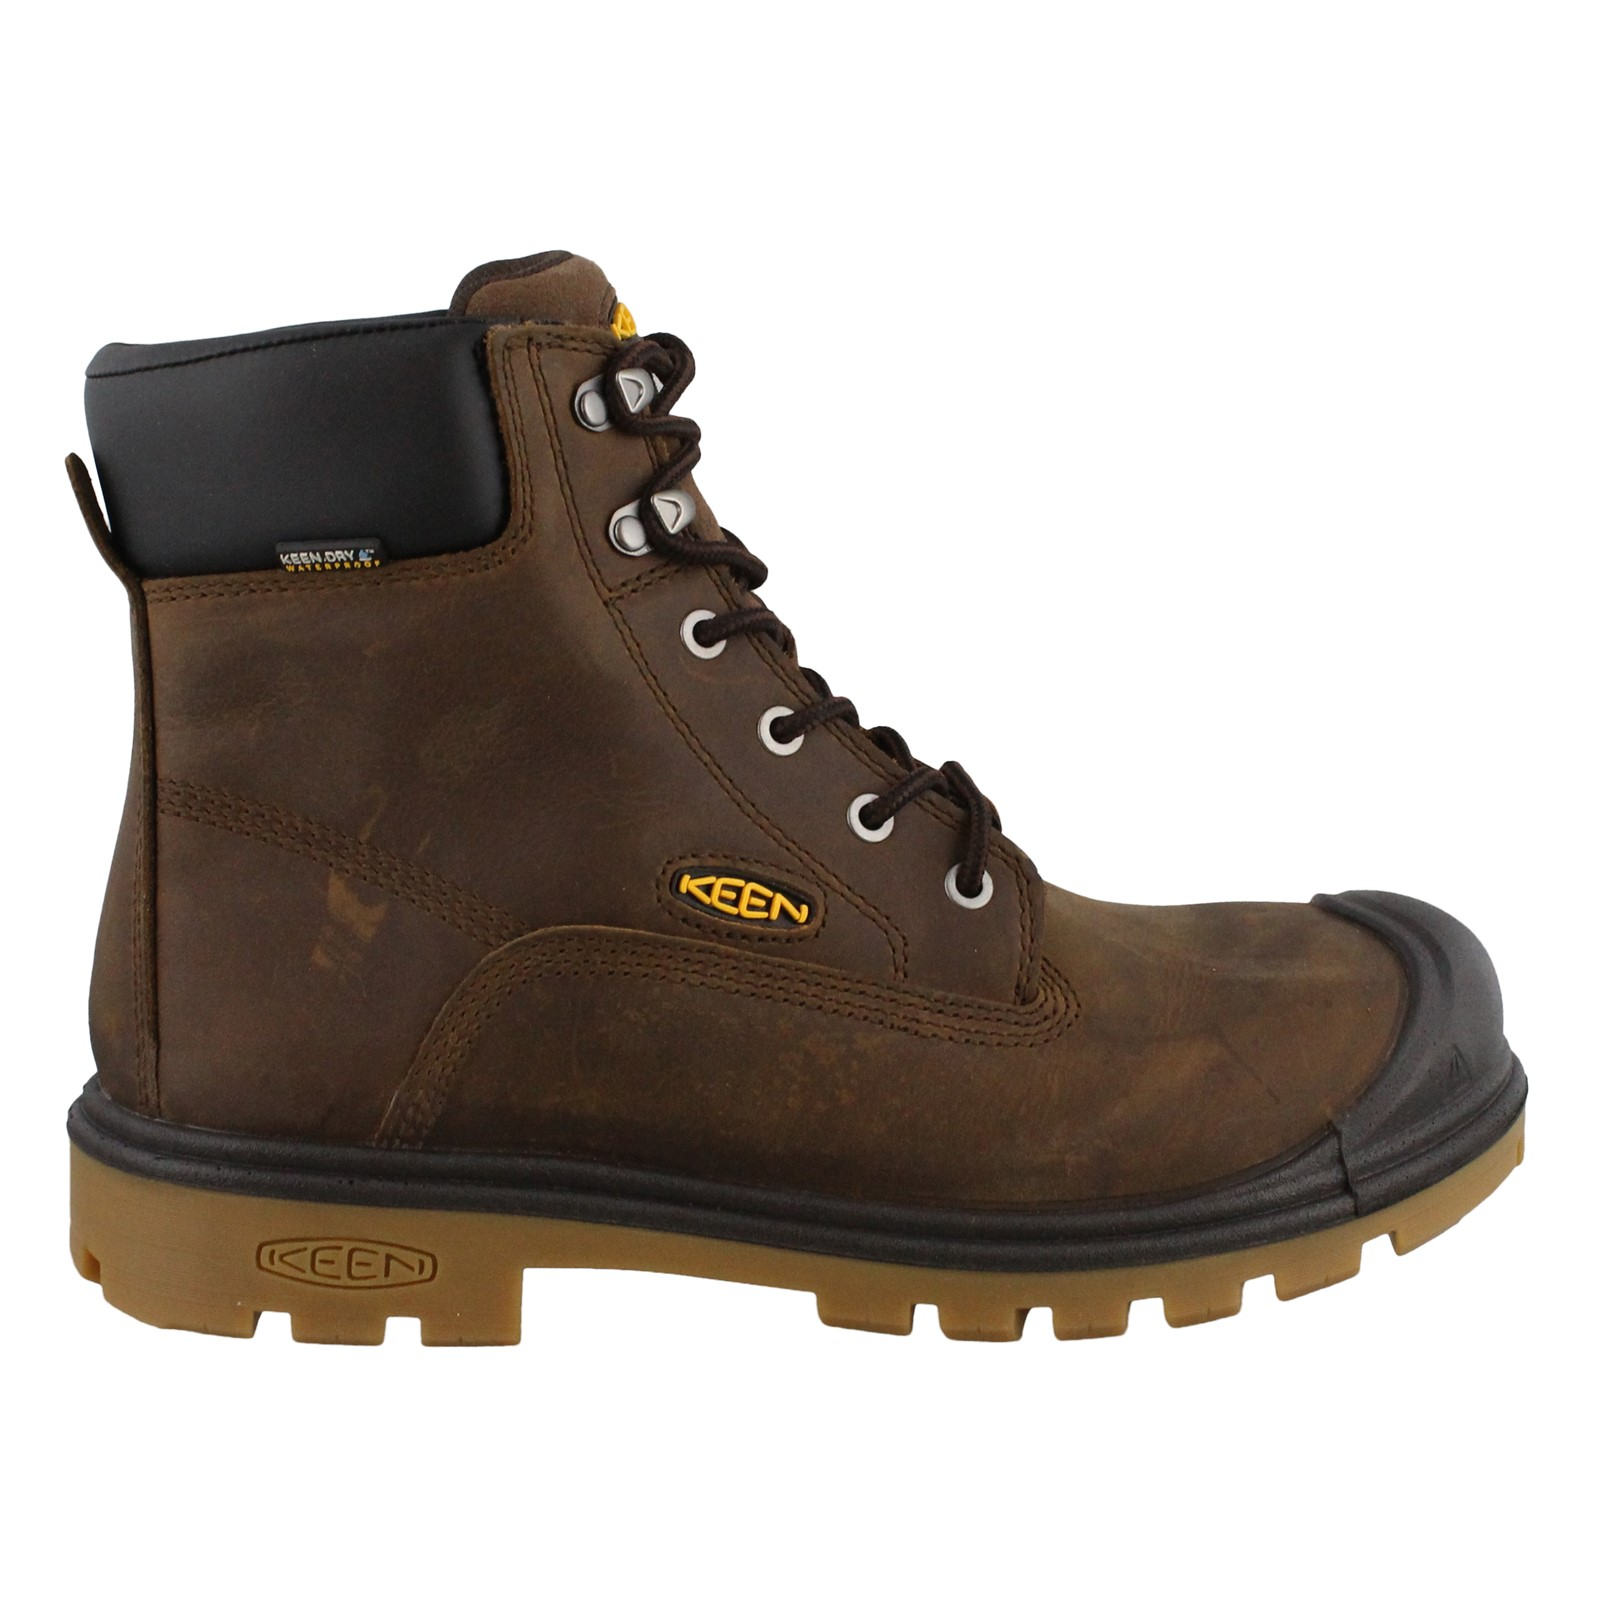 Men's Keen, Baltimore 6 inch Waterproof Boots